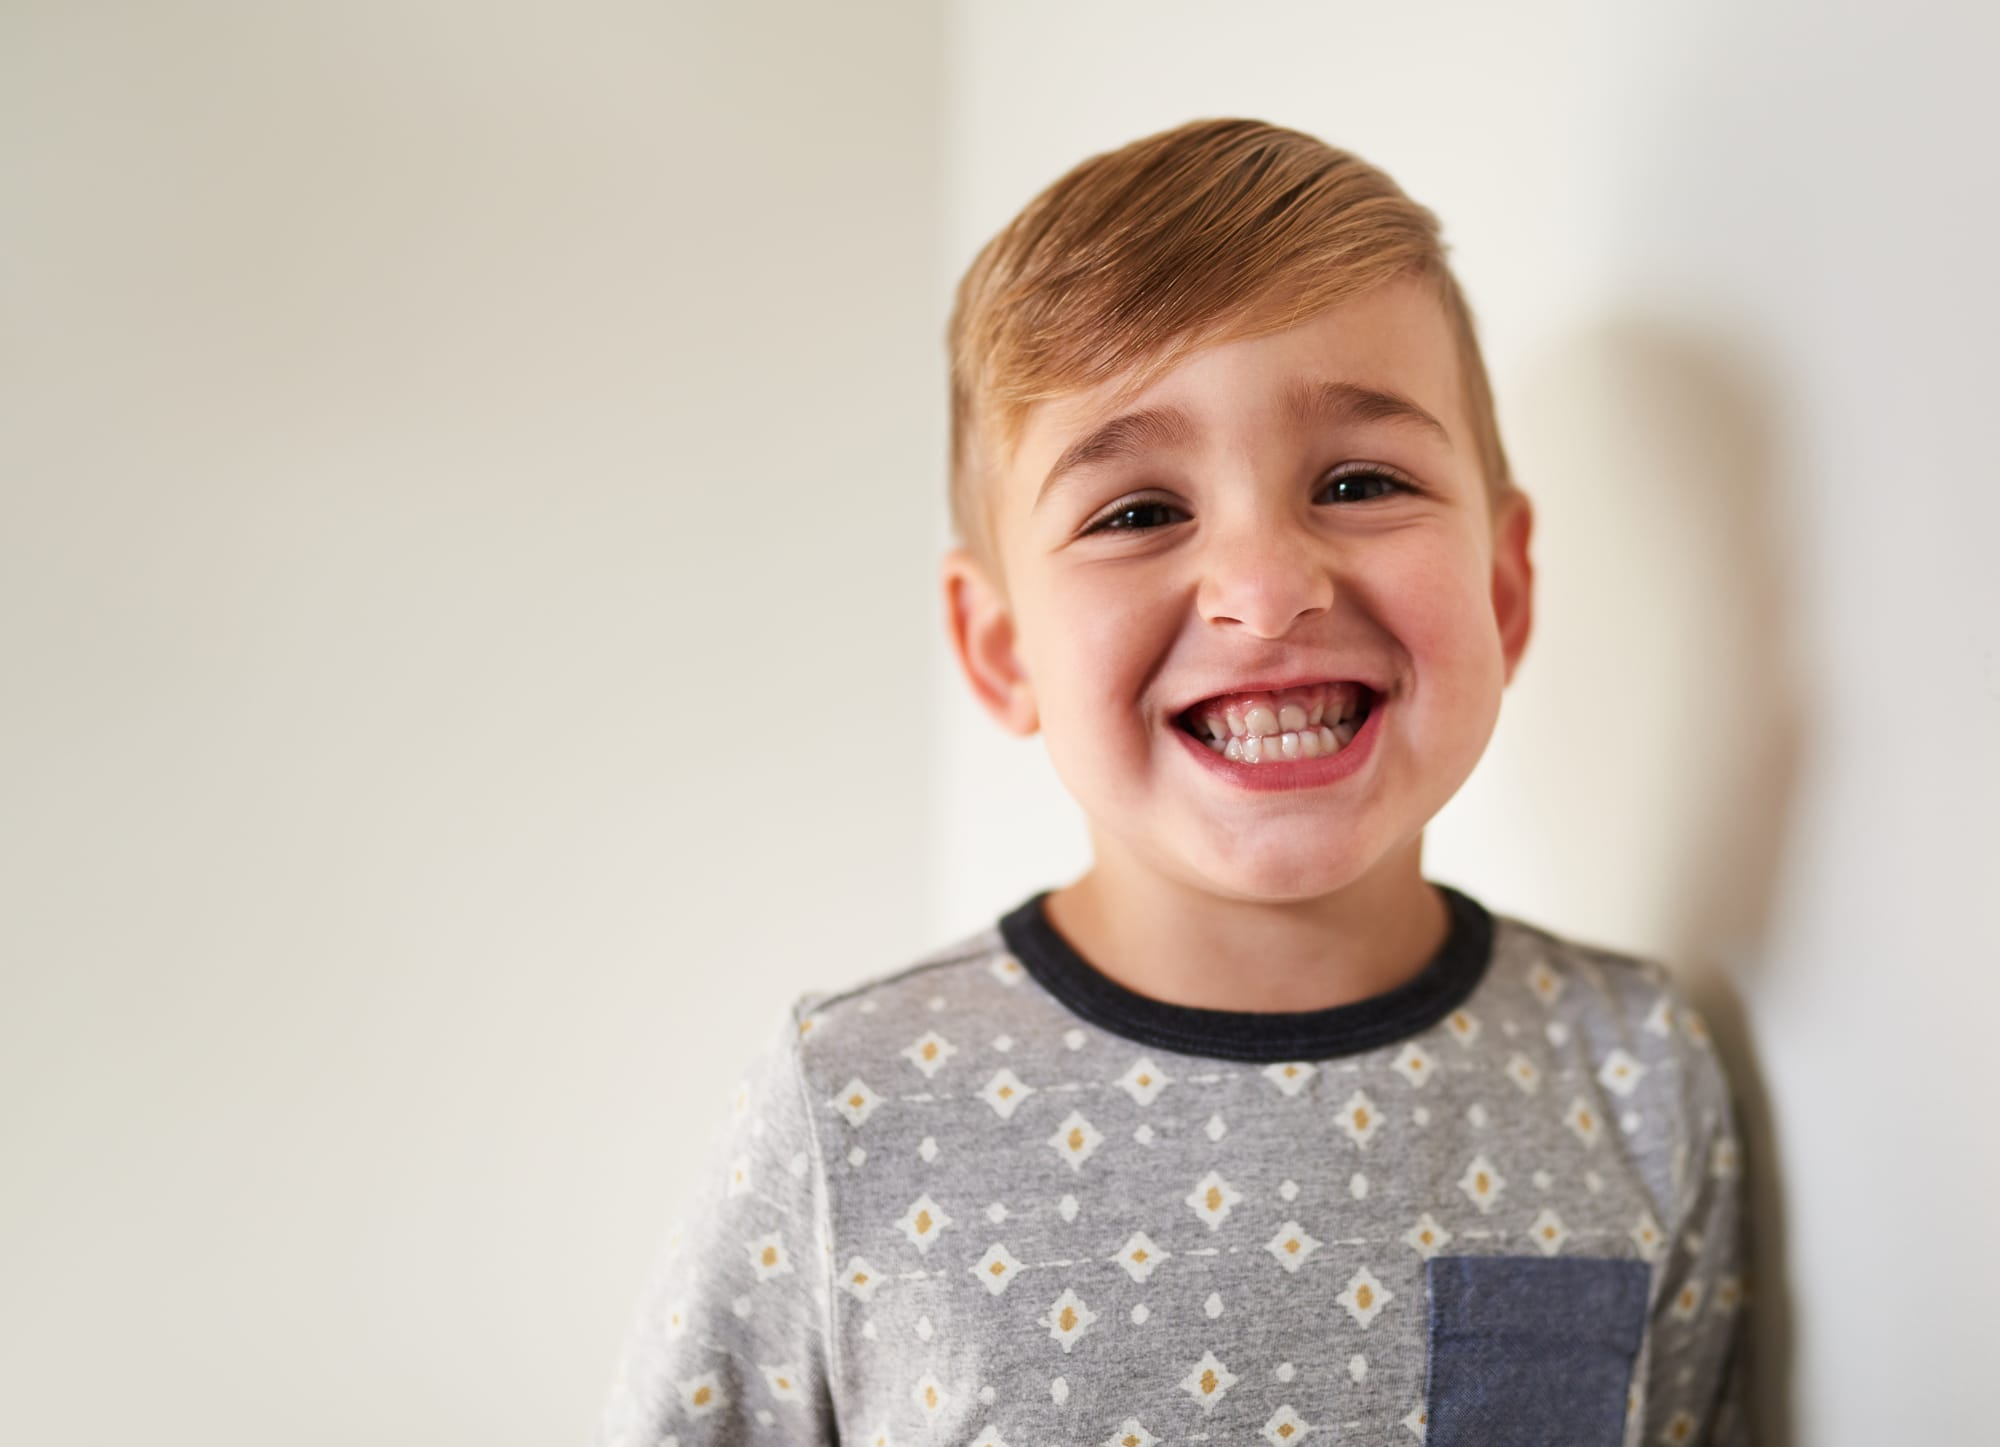 Isolated closeup shot of funny, cheerful little kid boy face looking at camera with adorable smile showing teeth, wearing hipster shirt with white background